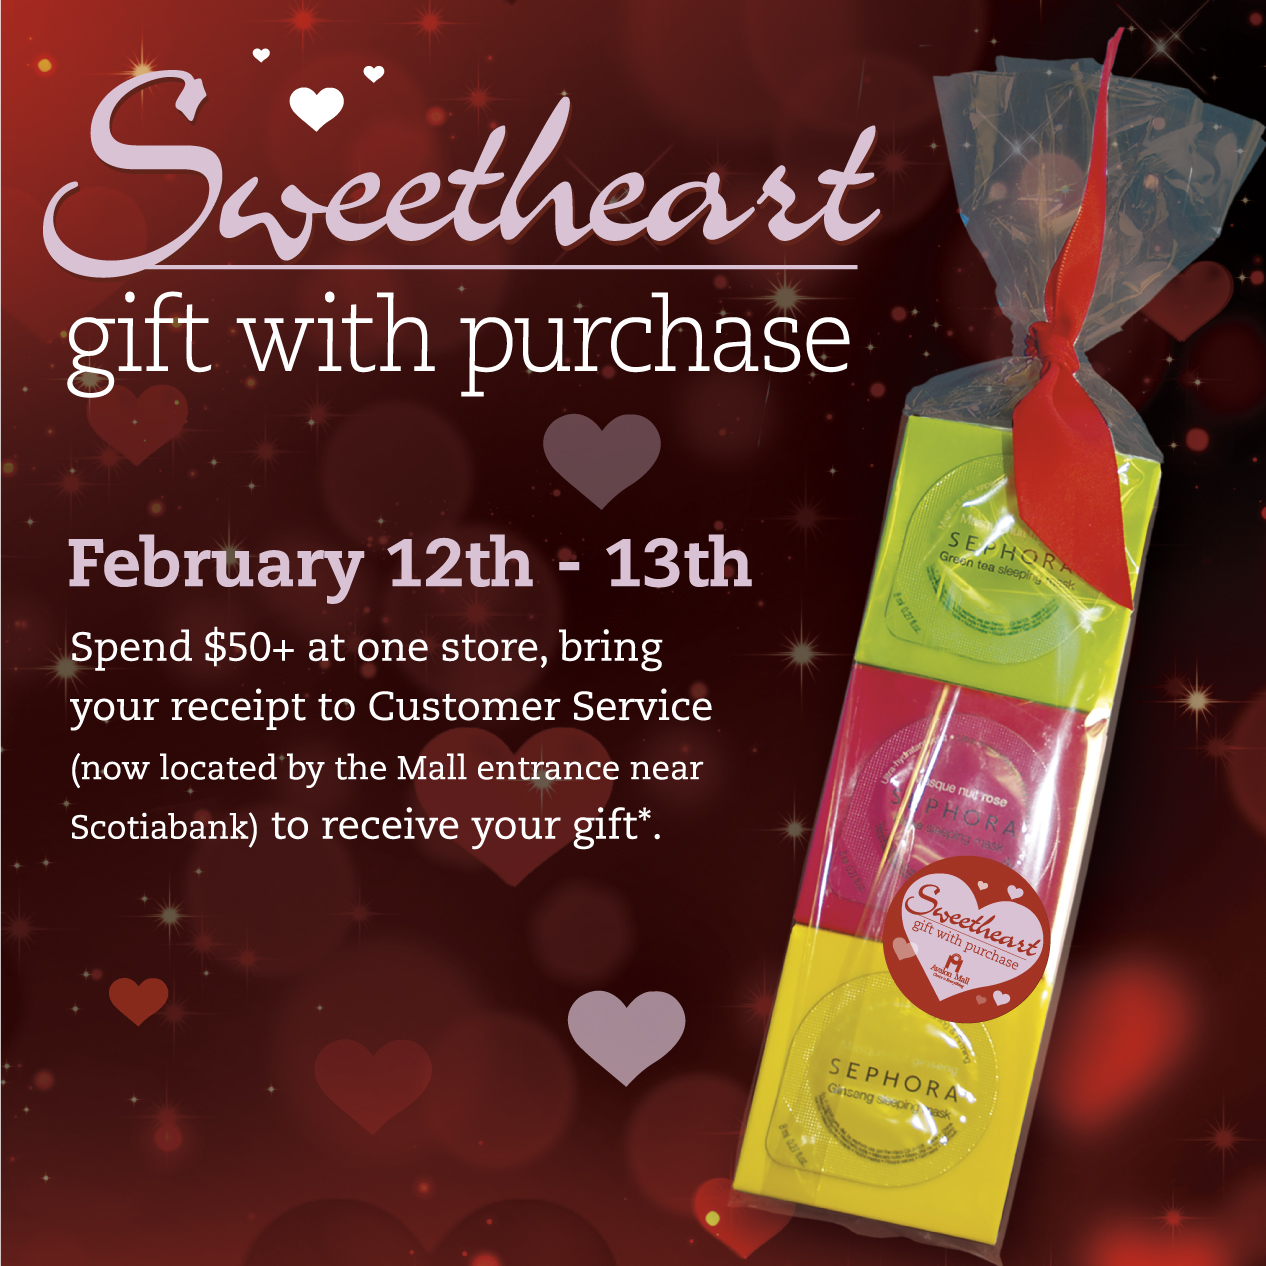 Sweetheart Gift with Purchase